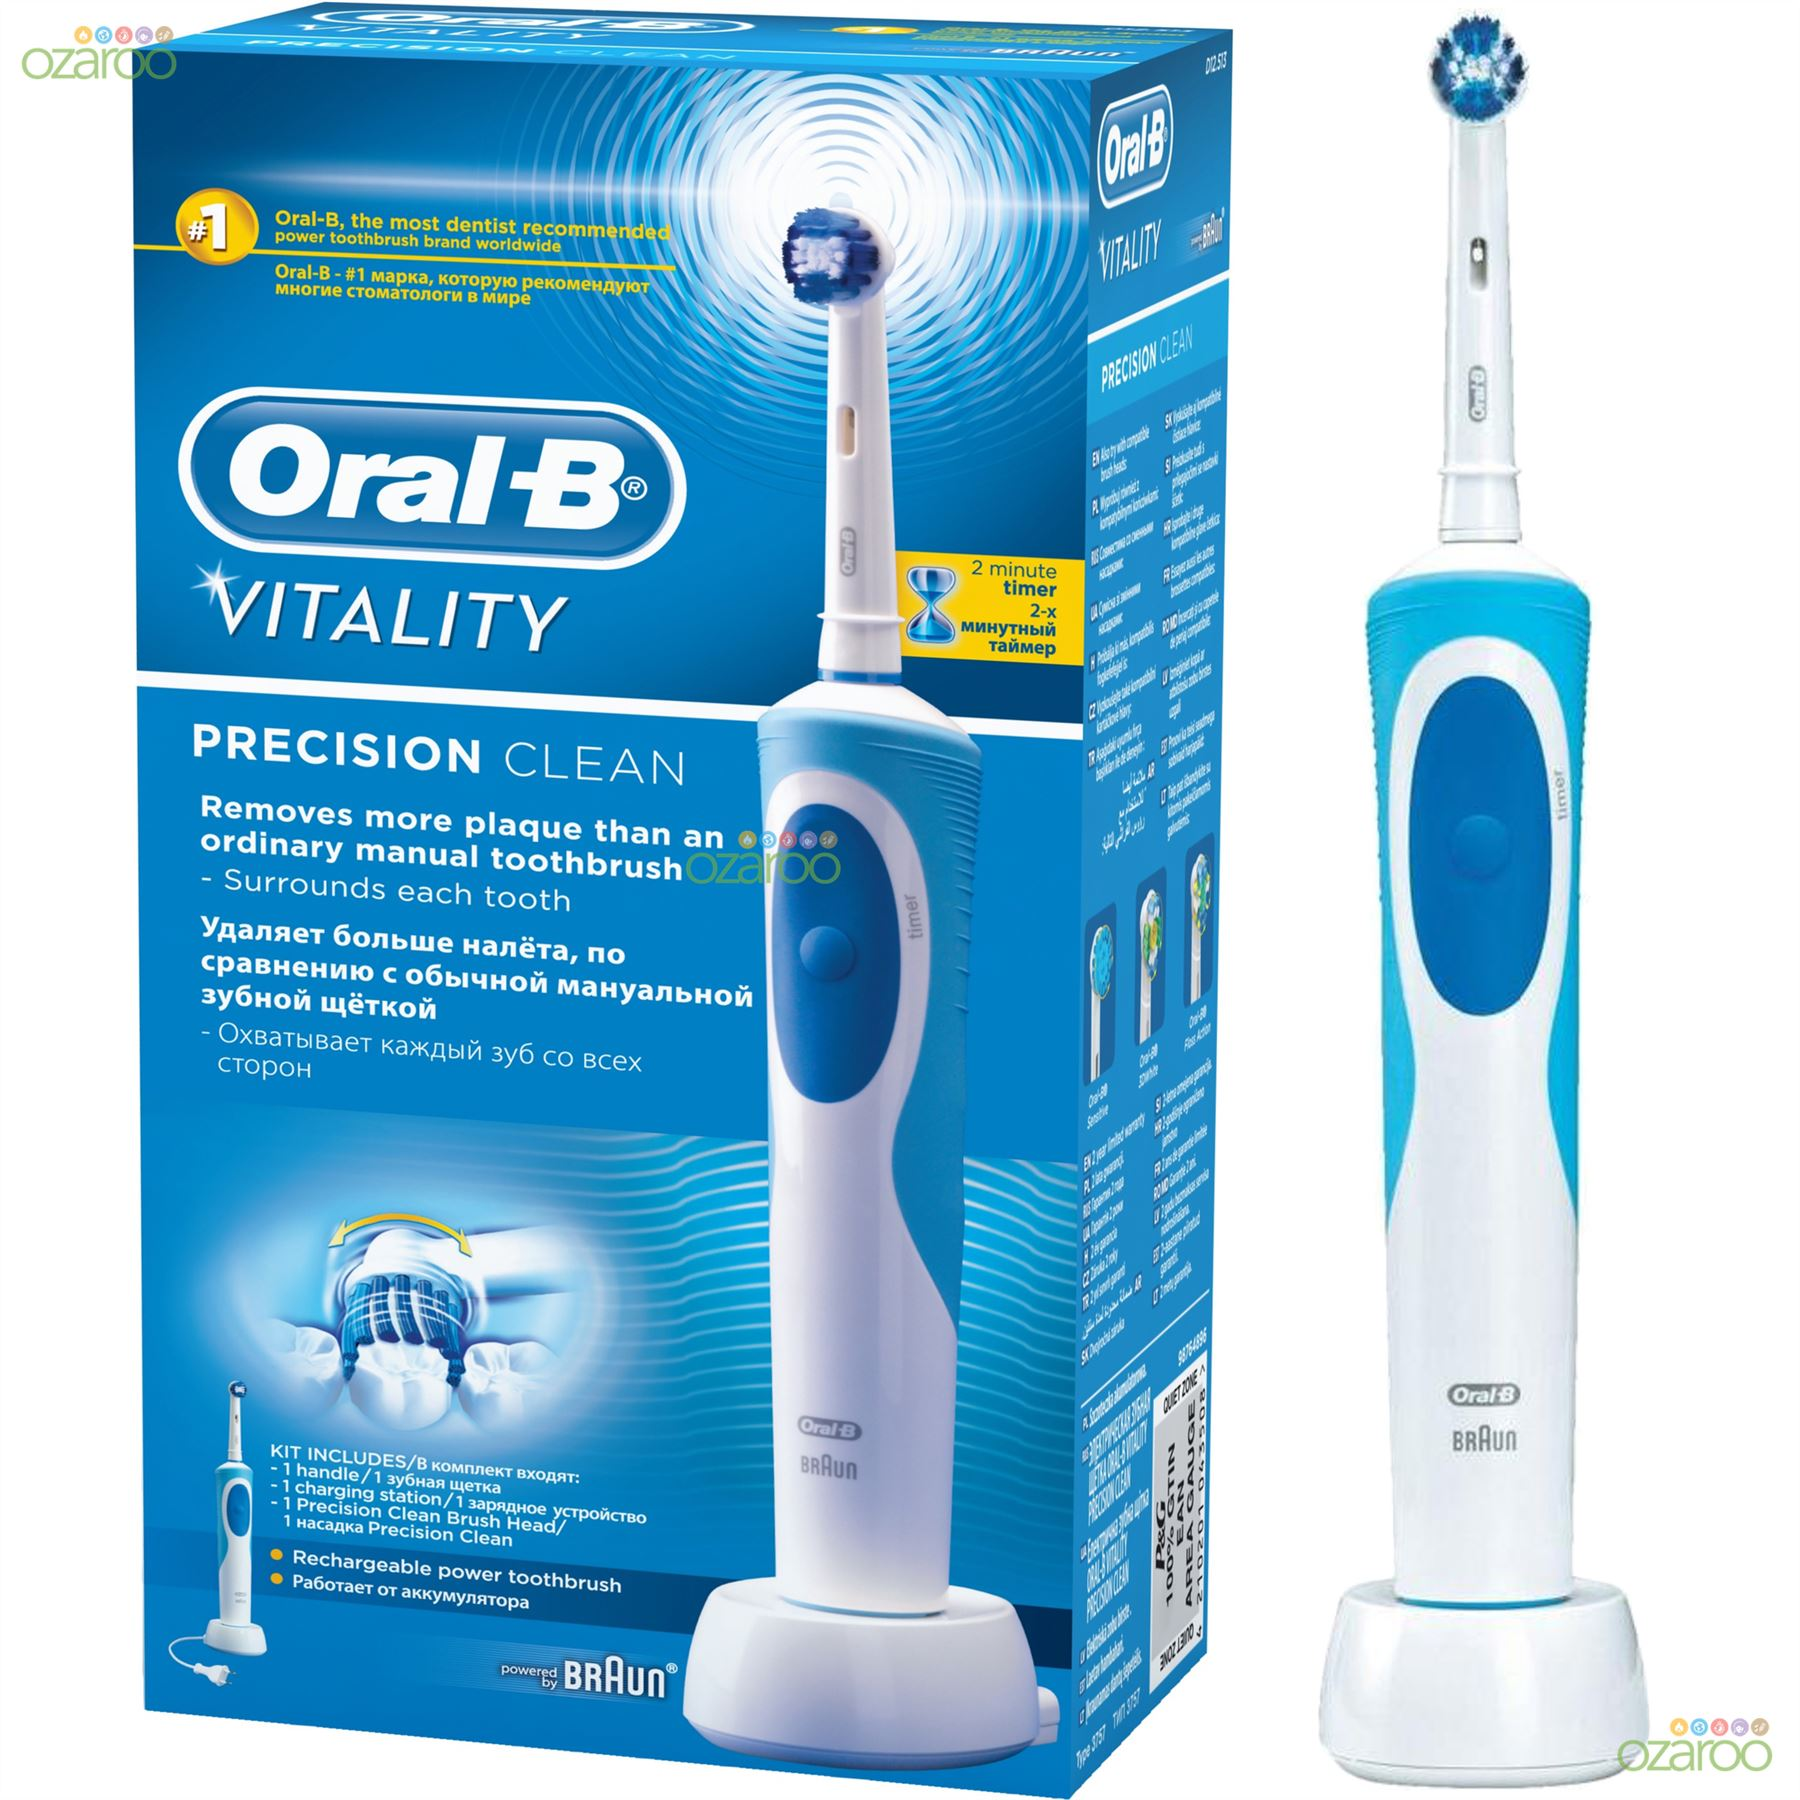 braun oral b vitality precision clean electric rechargeable power toothbrush ebay. Black Bedroom Furniture Sets. Home Design Ideas